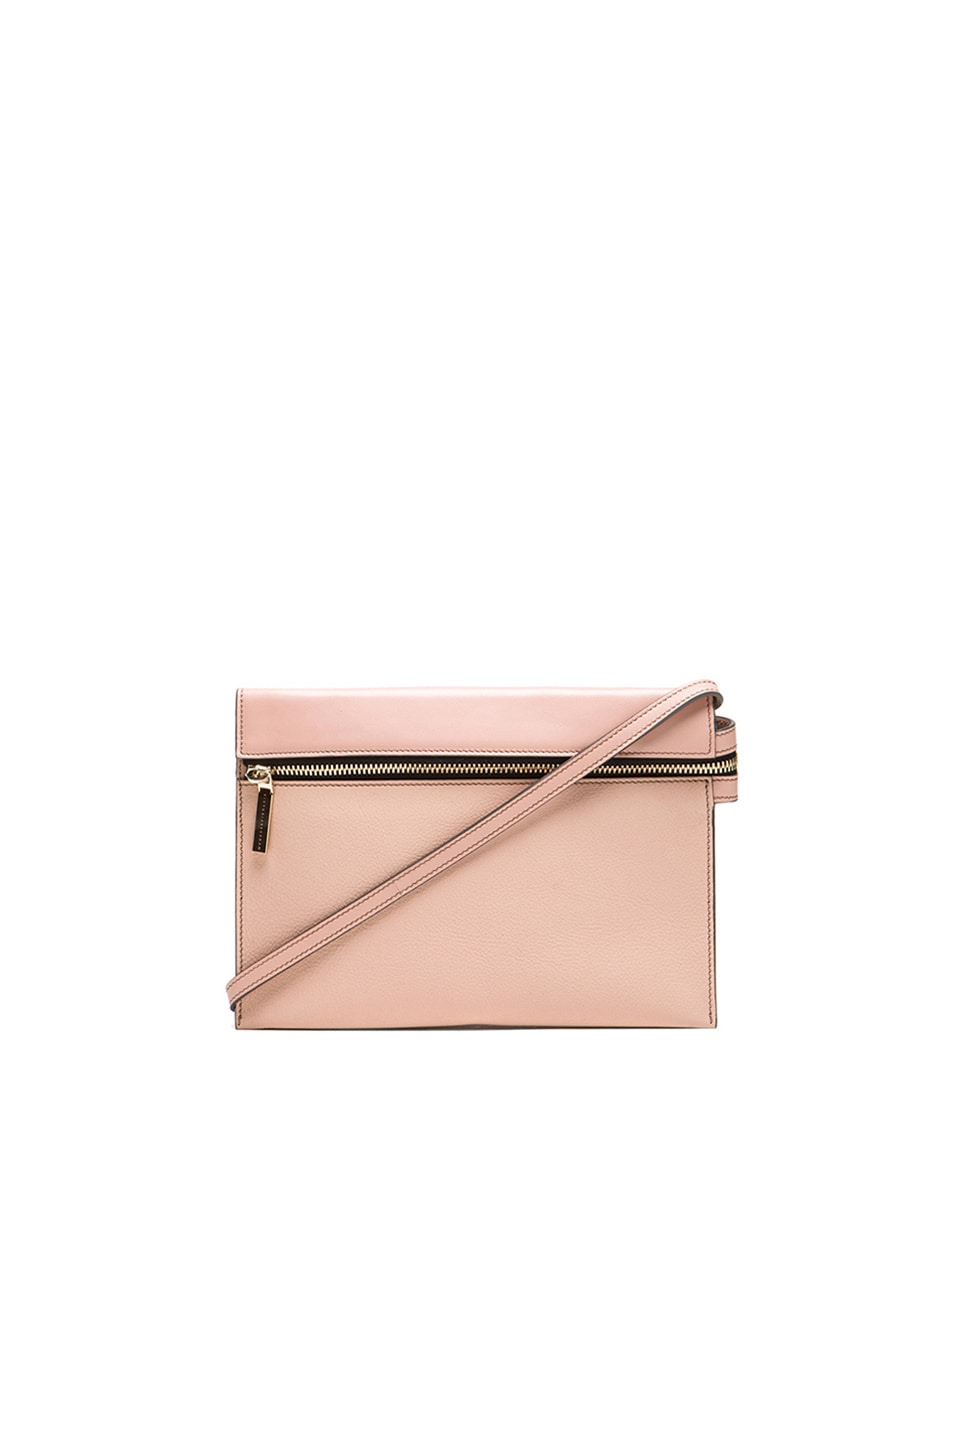 Image 1 of Victoria Beckham Zip Pouch Cross Body in Blush Pink